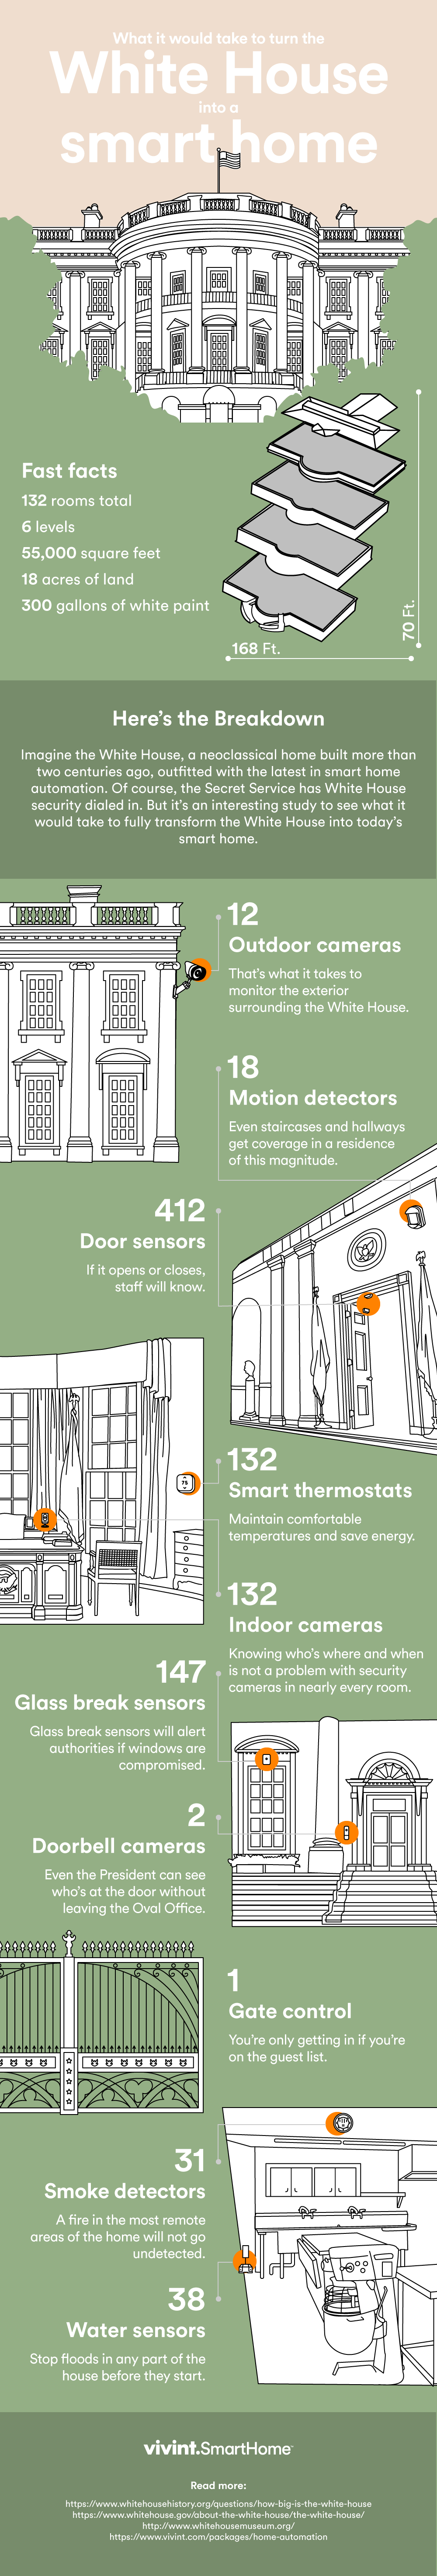 What Would It Take to Turn the White House Into a Smart Home [infographic]